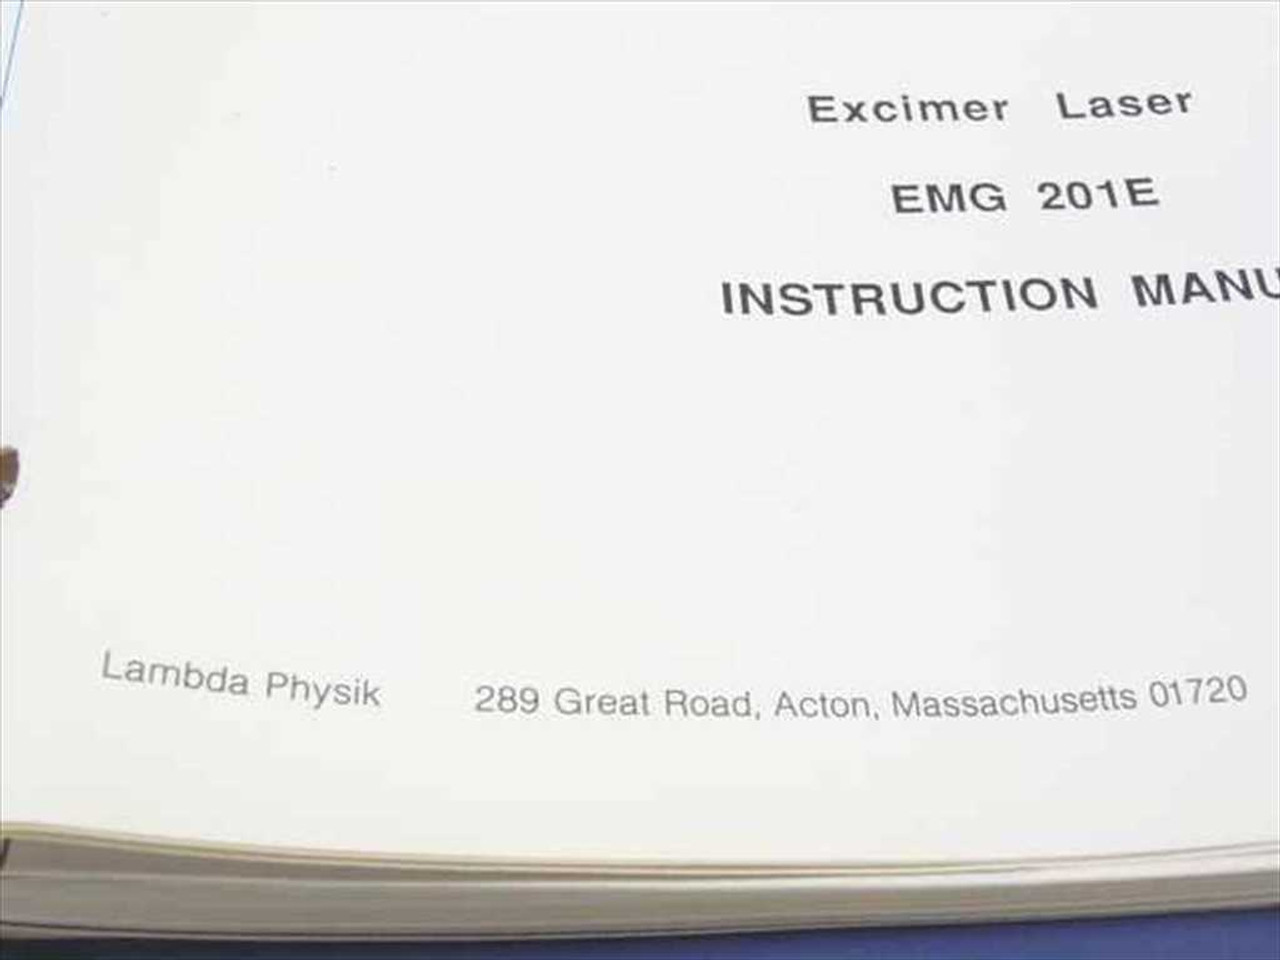 ... Array - lambda physik emg 201e excimer laser instruction manual rh  recycledgoods com